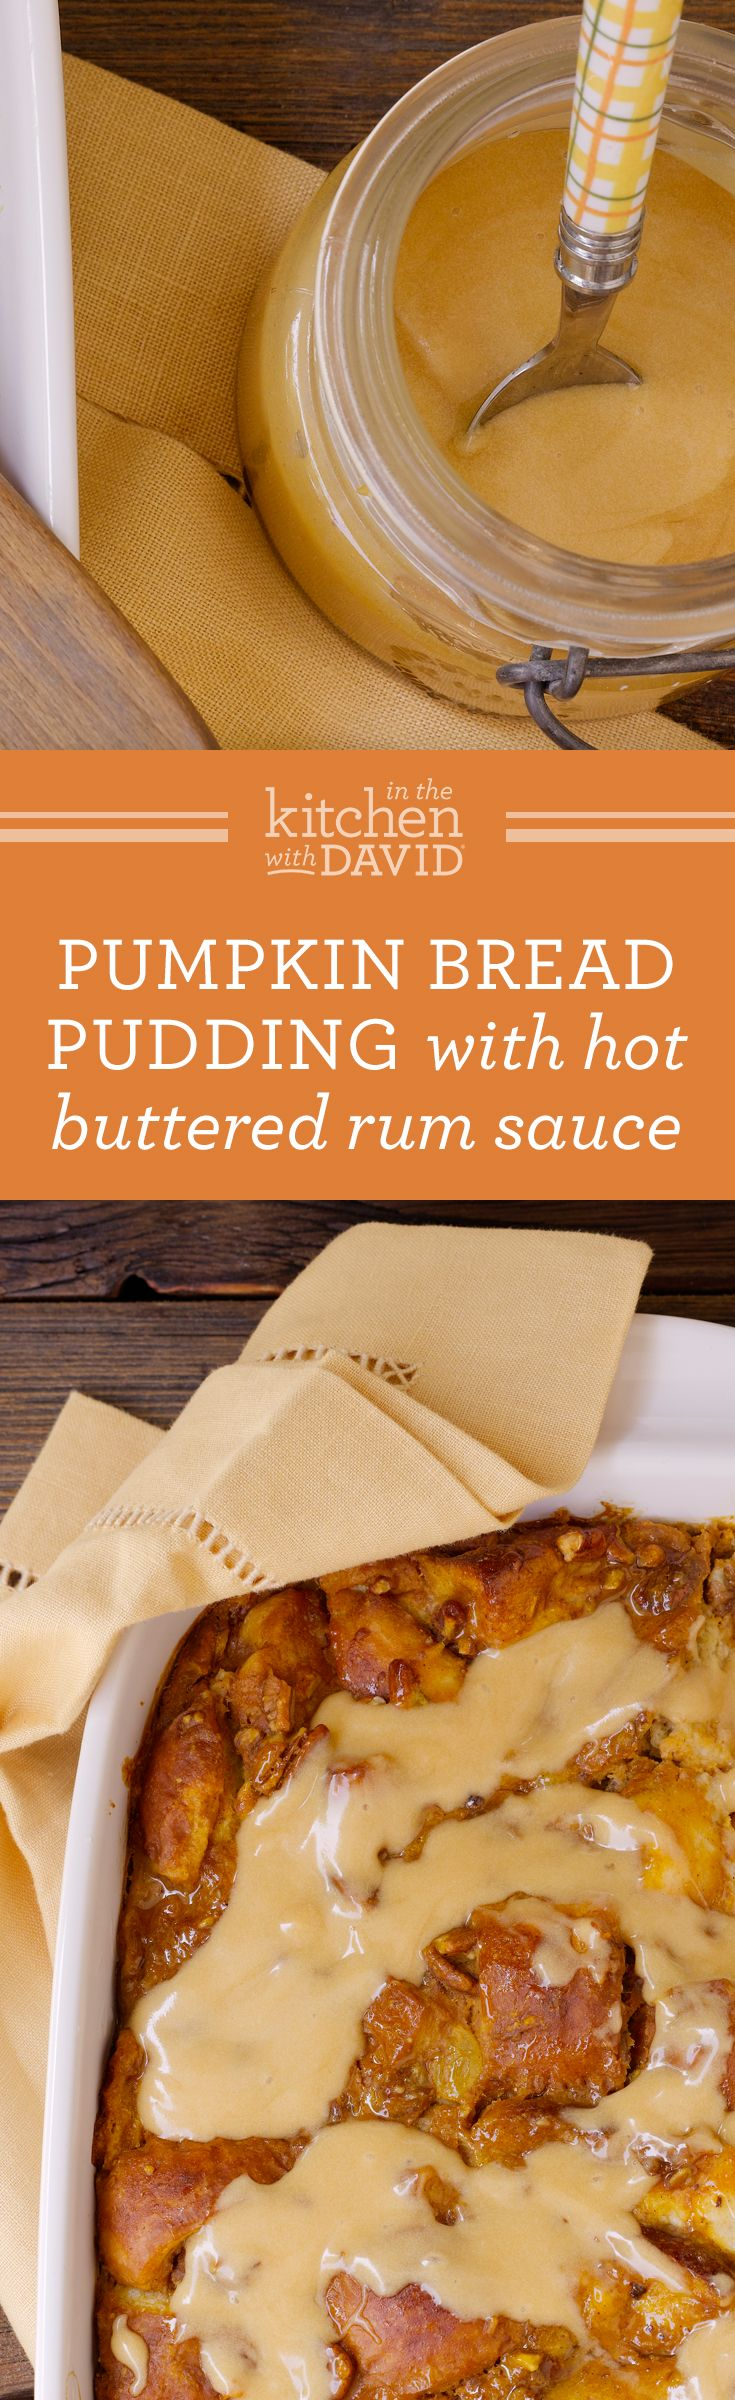 Pumpkin Bread Pudding with Hot Buttered Rum Sauce — Recipes